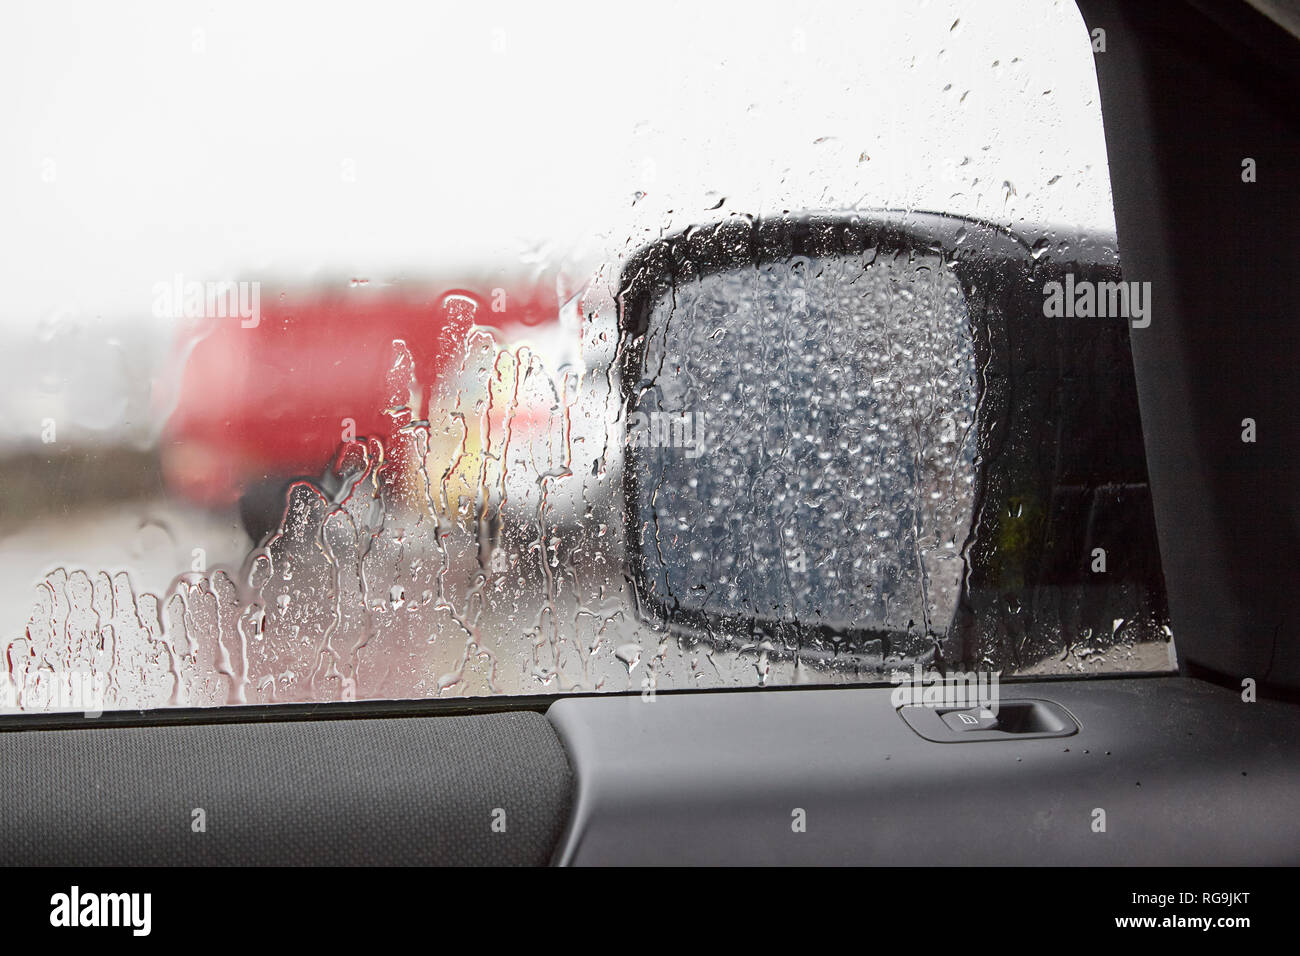 STONEHAVEN, ABERDEENSHIRE, SCOTLAND, UK, 7th July 2017. Rain soaked car side window and mirror during a torrential cloudburst. Stonehaven, - Stock Image